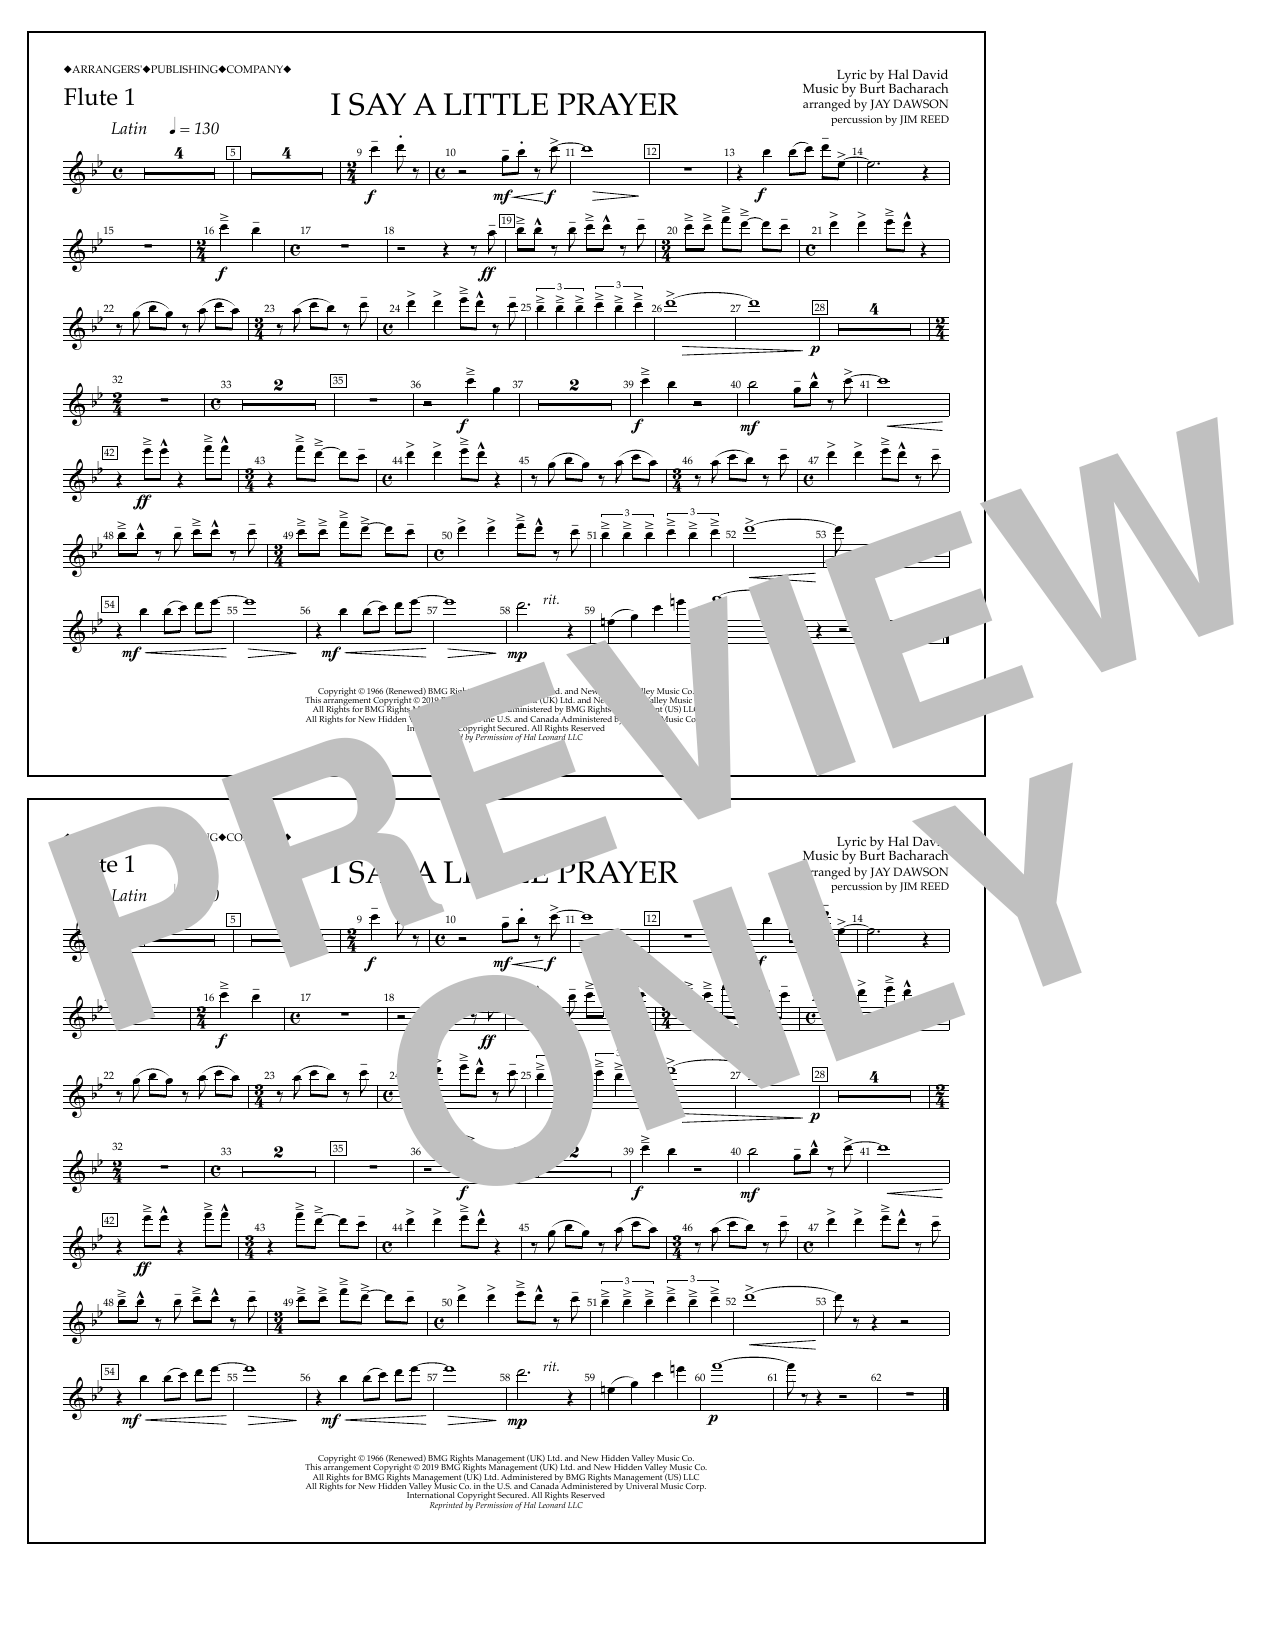 Aretha Franklin I Say a Little Prayer (arr. Jay Dawson) - Flute 1 sheet music notes and chords